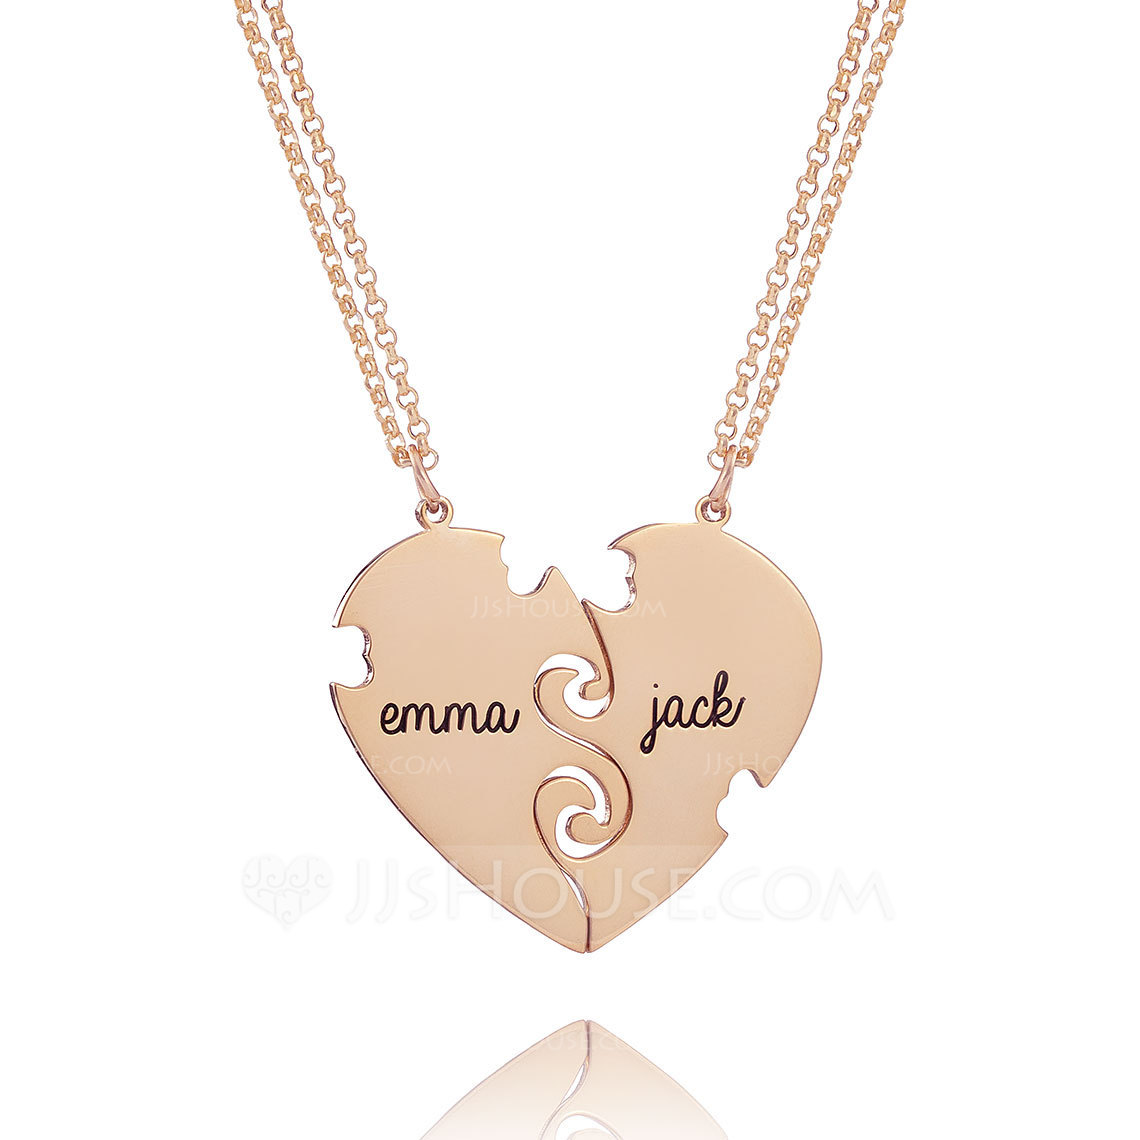 Custom 18k Rose Gold Plated Silver Engraving/Engraved Two Heart Necklace (Set of 2) - Christmas Gifts